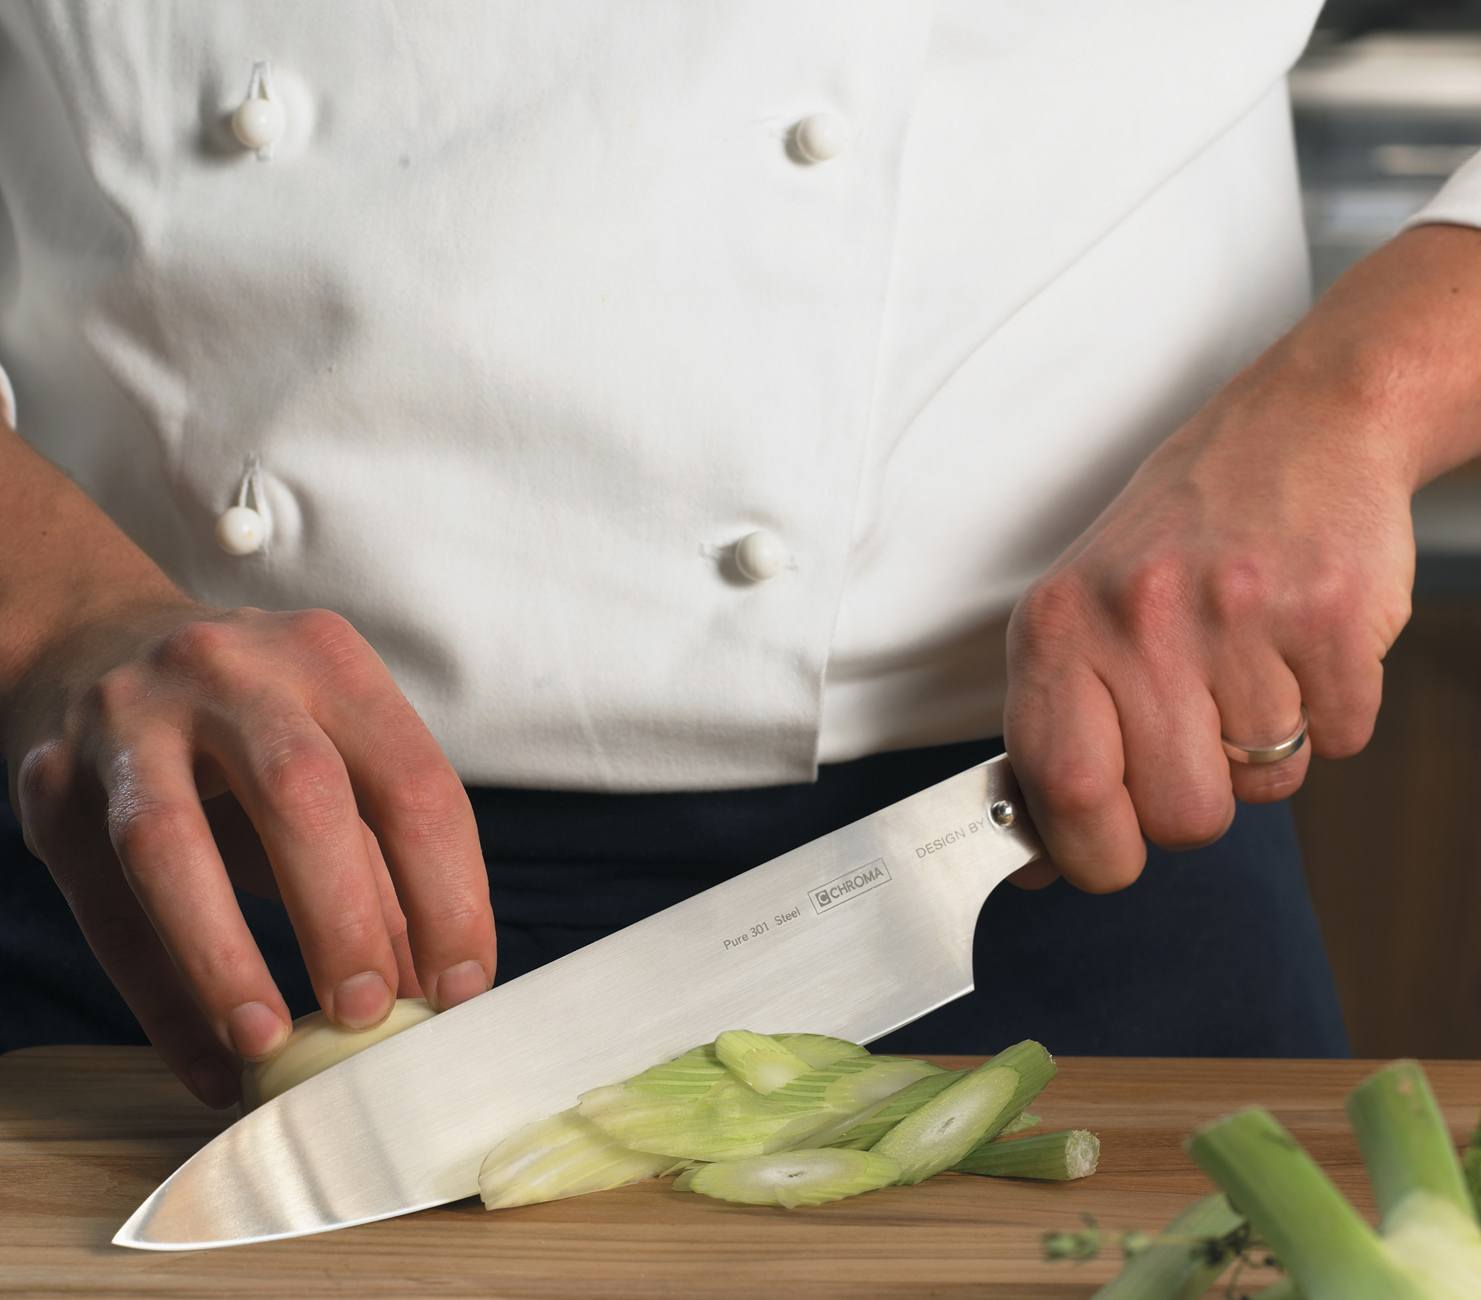 Knife Safety Knife Care And Knife Skills The Basics For